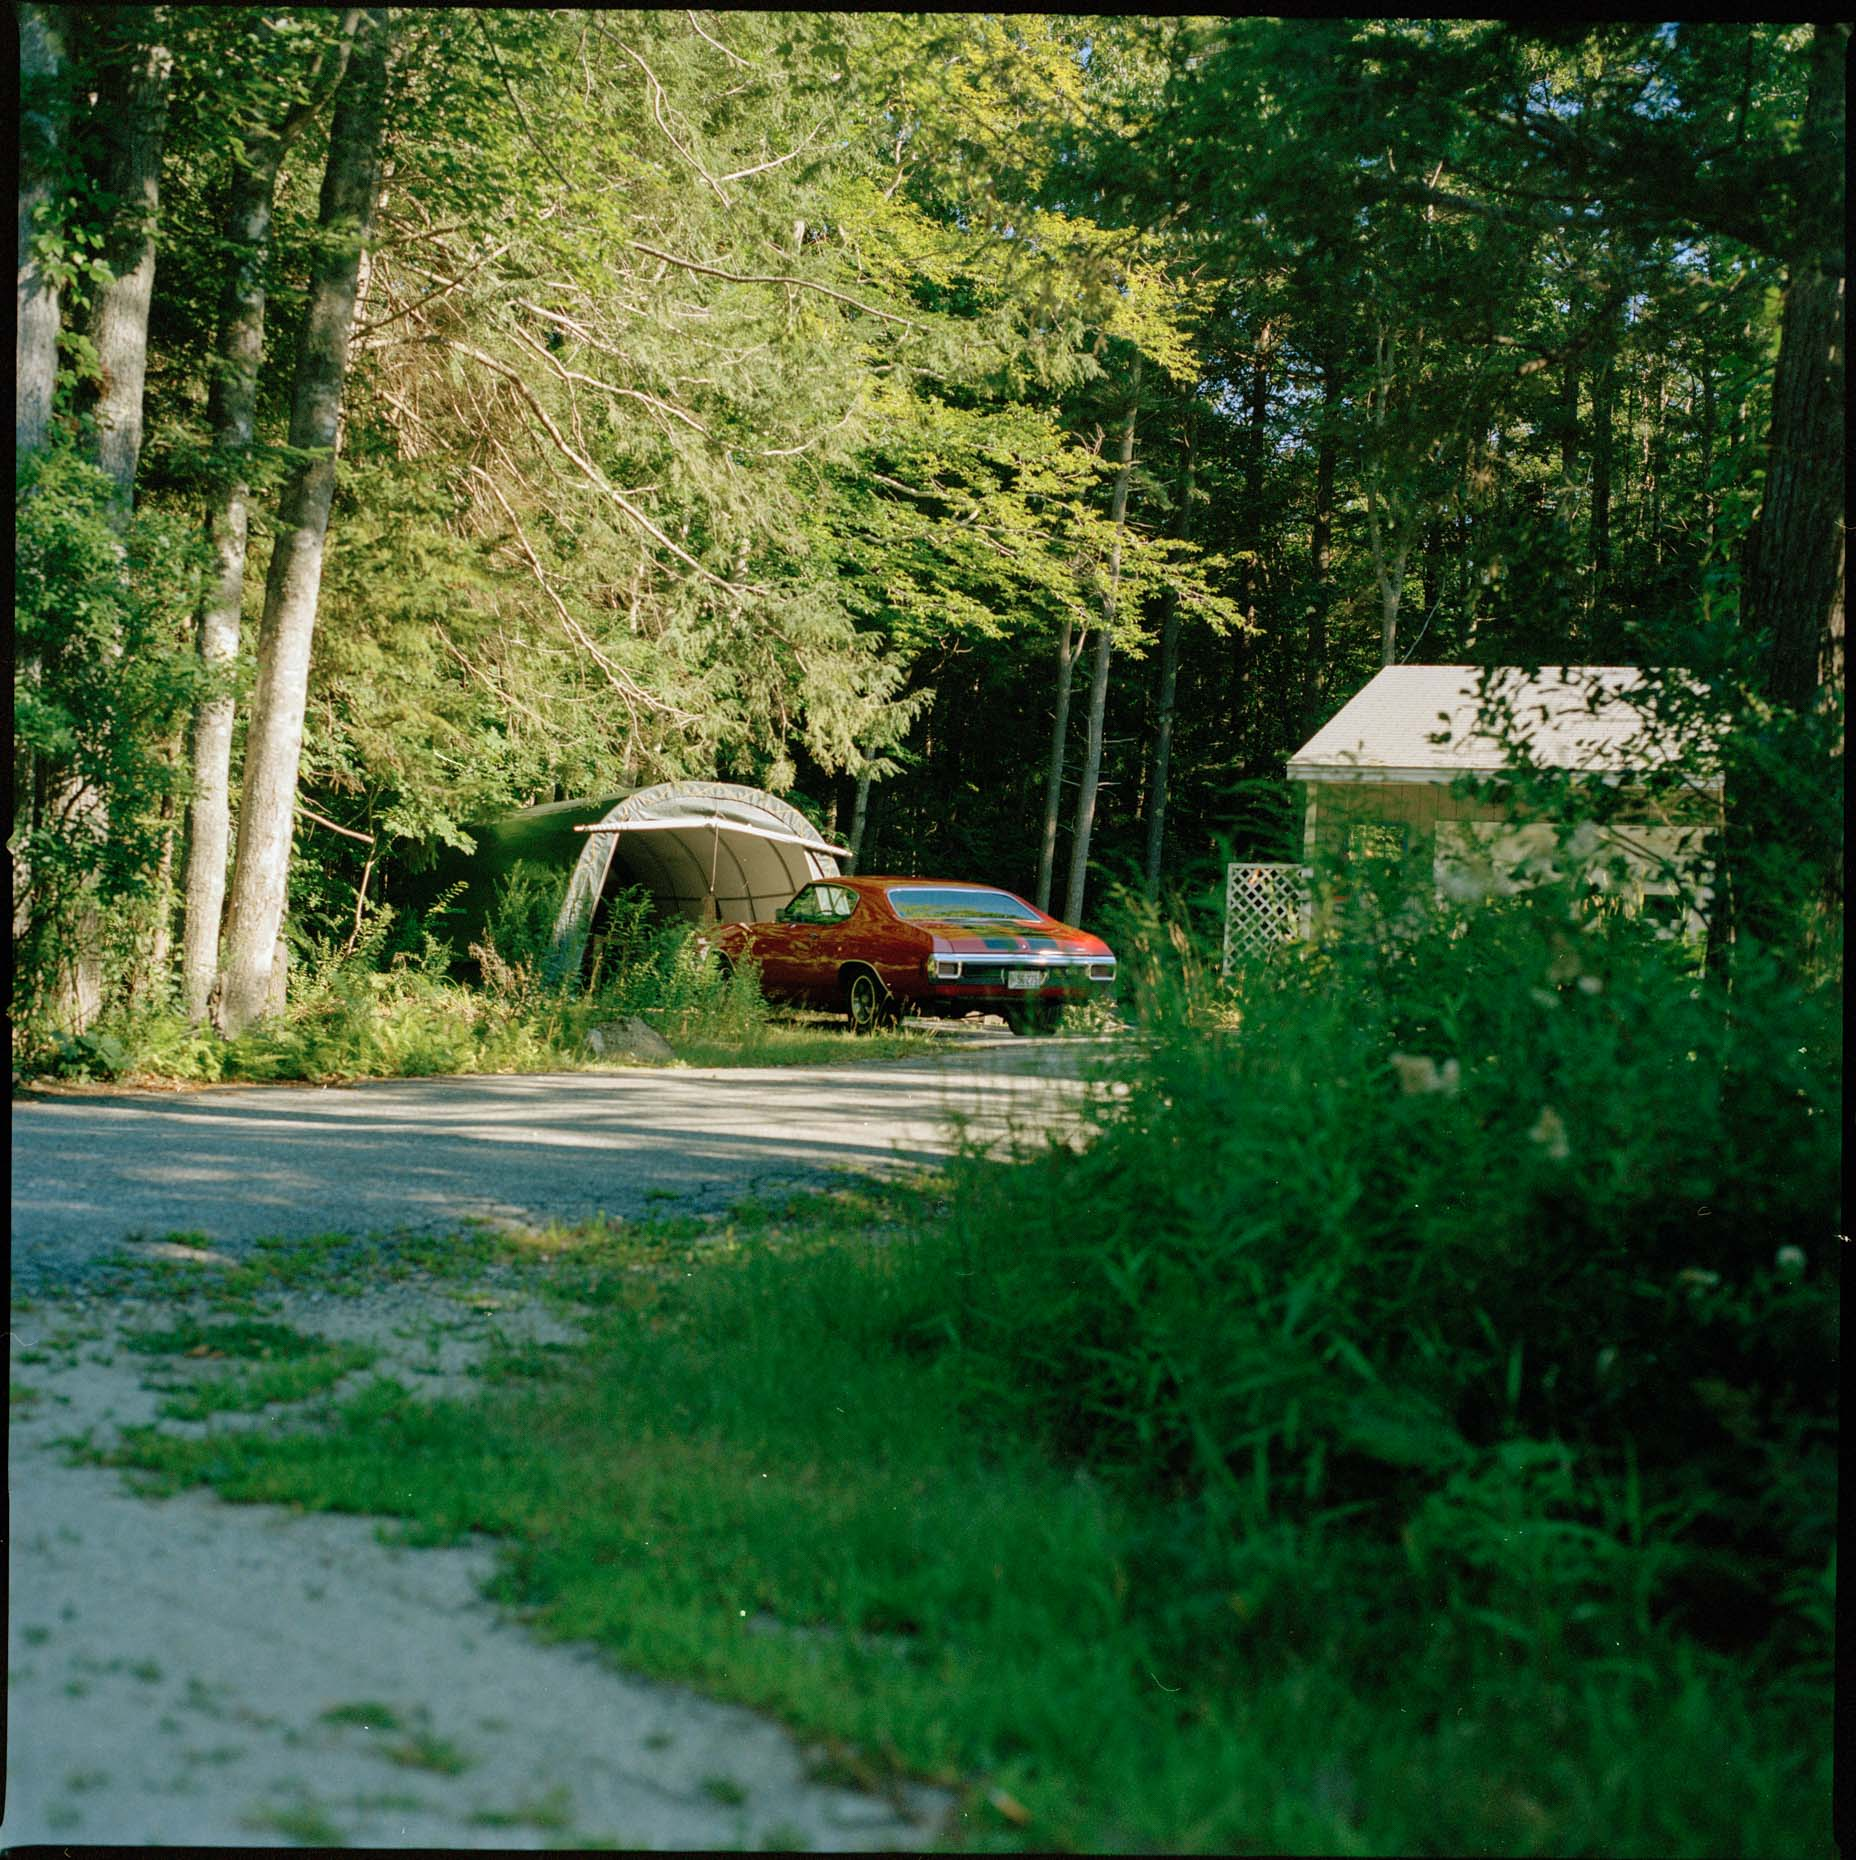 A vintage sports car sits in a driveway surrounded by green foliage, somewhere in Maine, USA